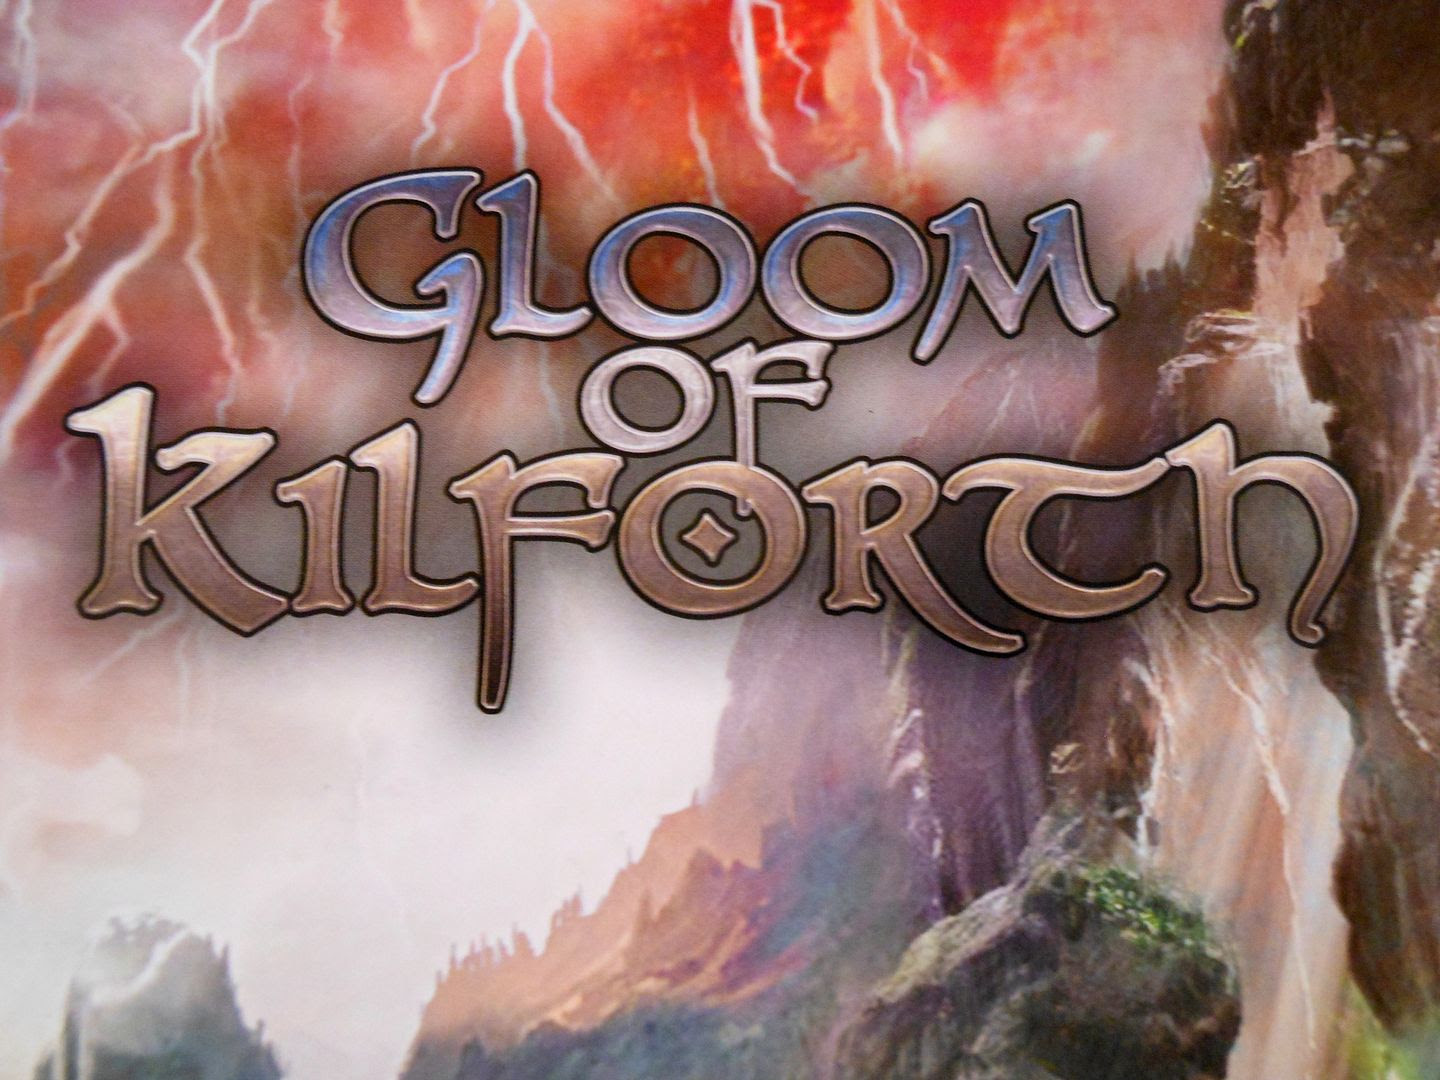 Moody title art from the cover of the Gloom of Kilforth rules book.